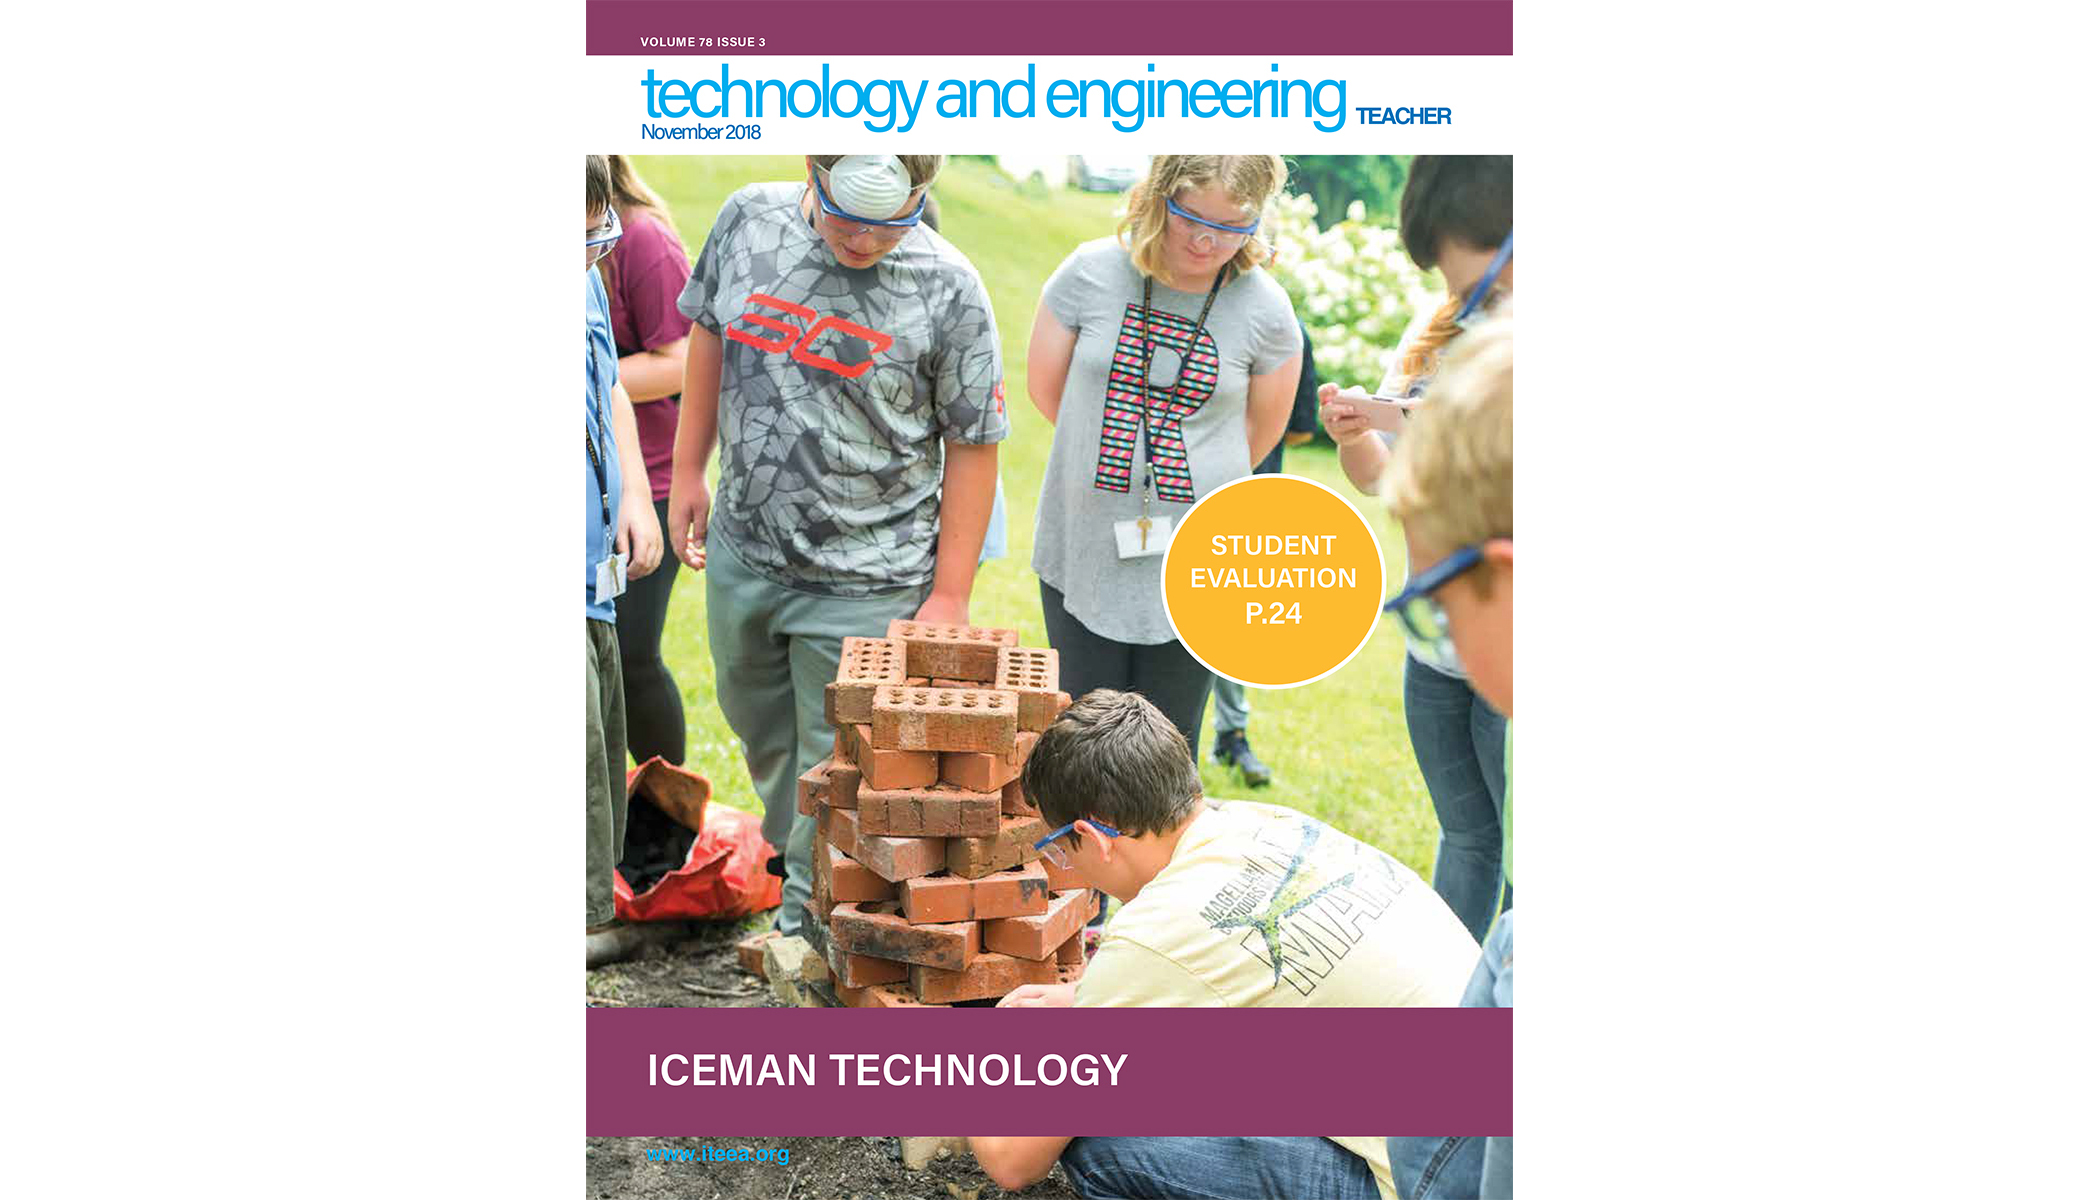 Here's a Sample of What's Available in the November 2018 Issue of Technology and Engineering Teacher